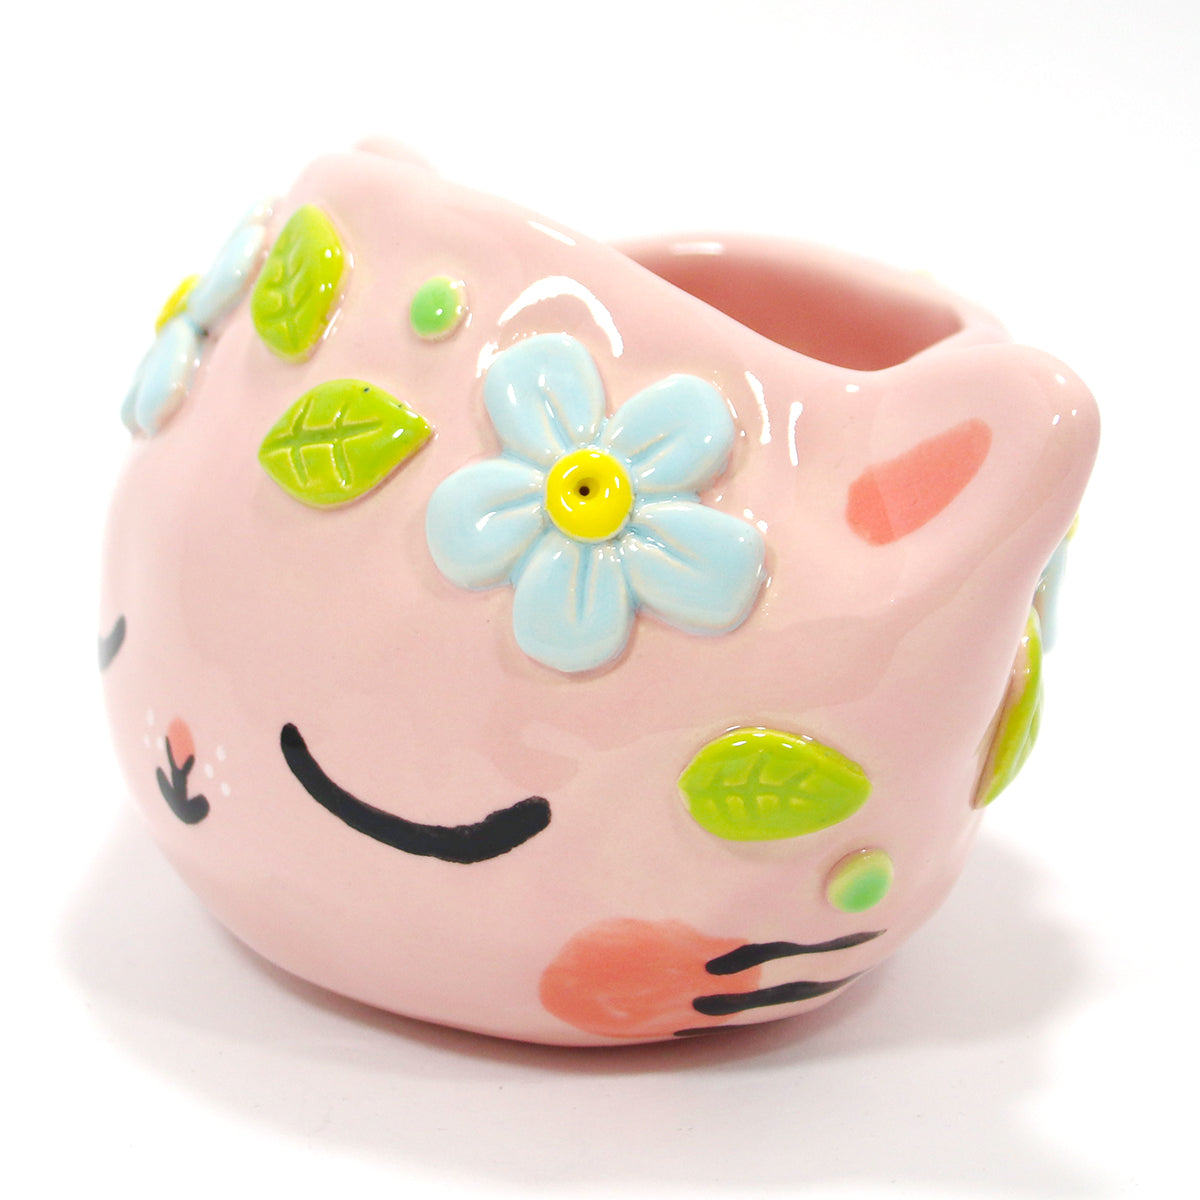 Ceramic Kitty Planter #151 - XXS